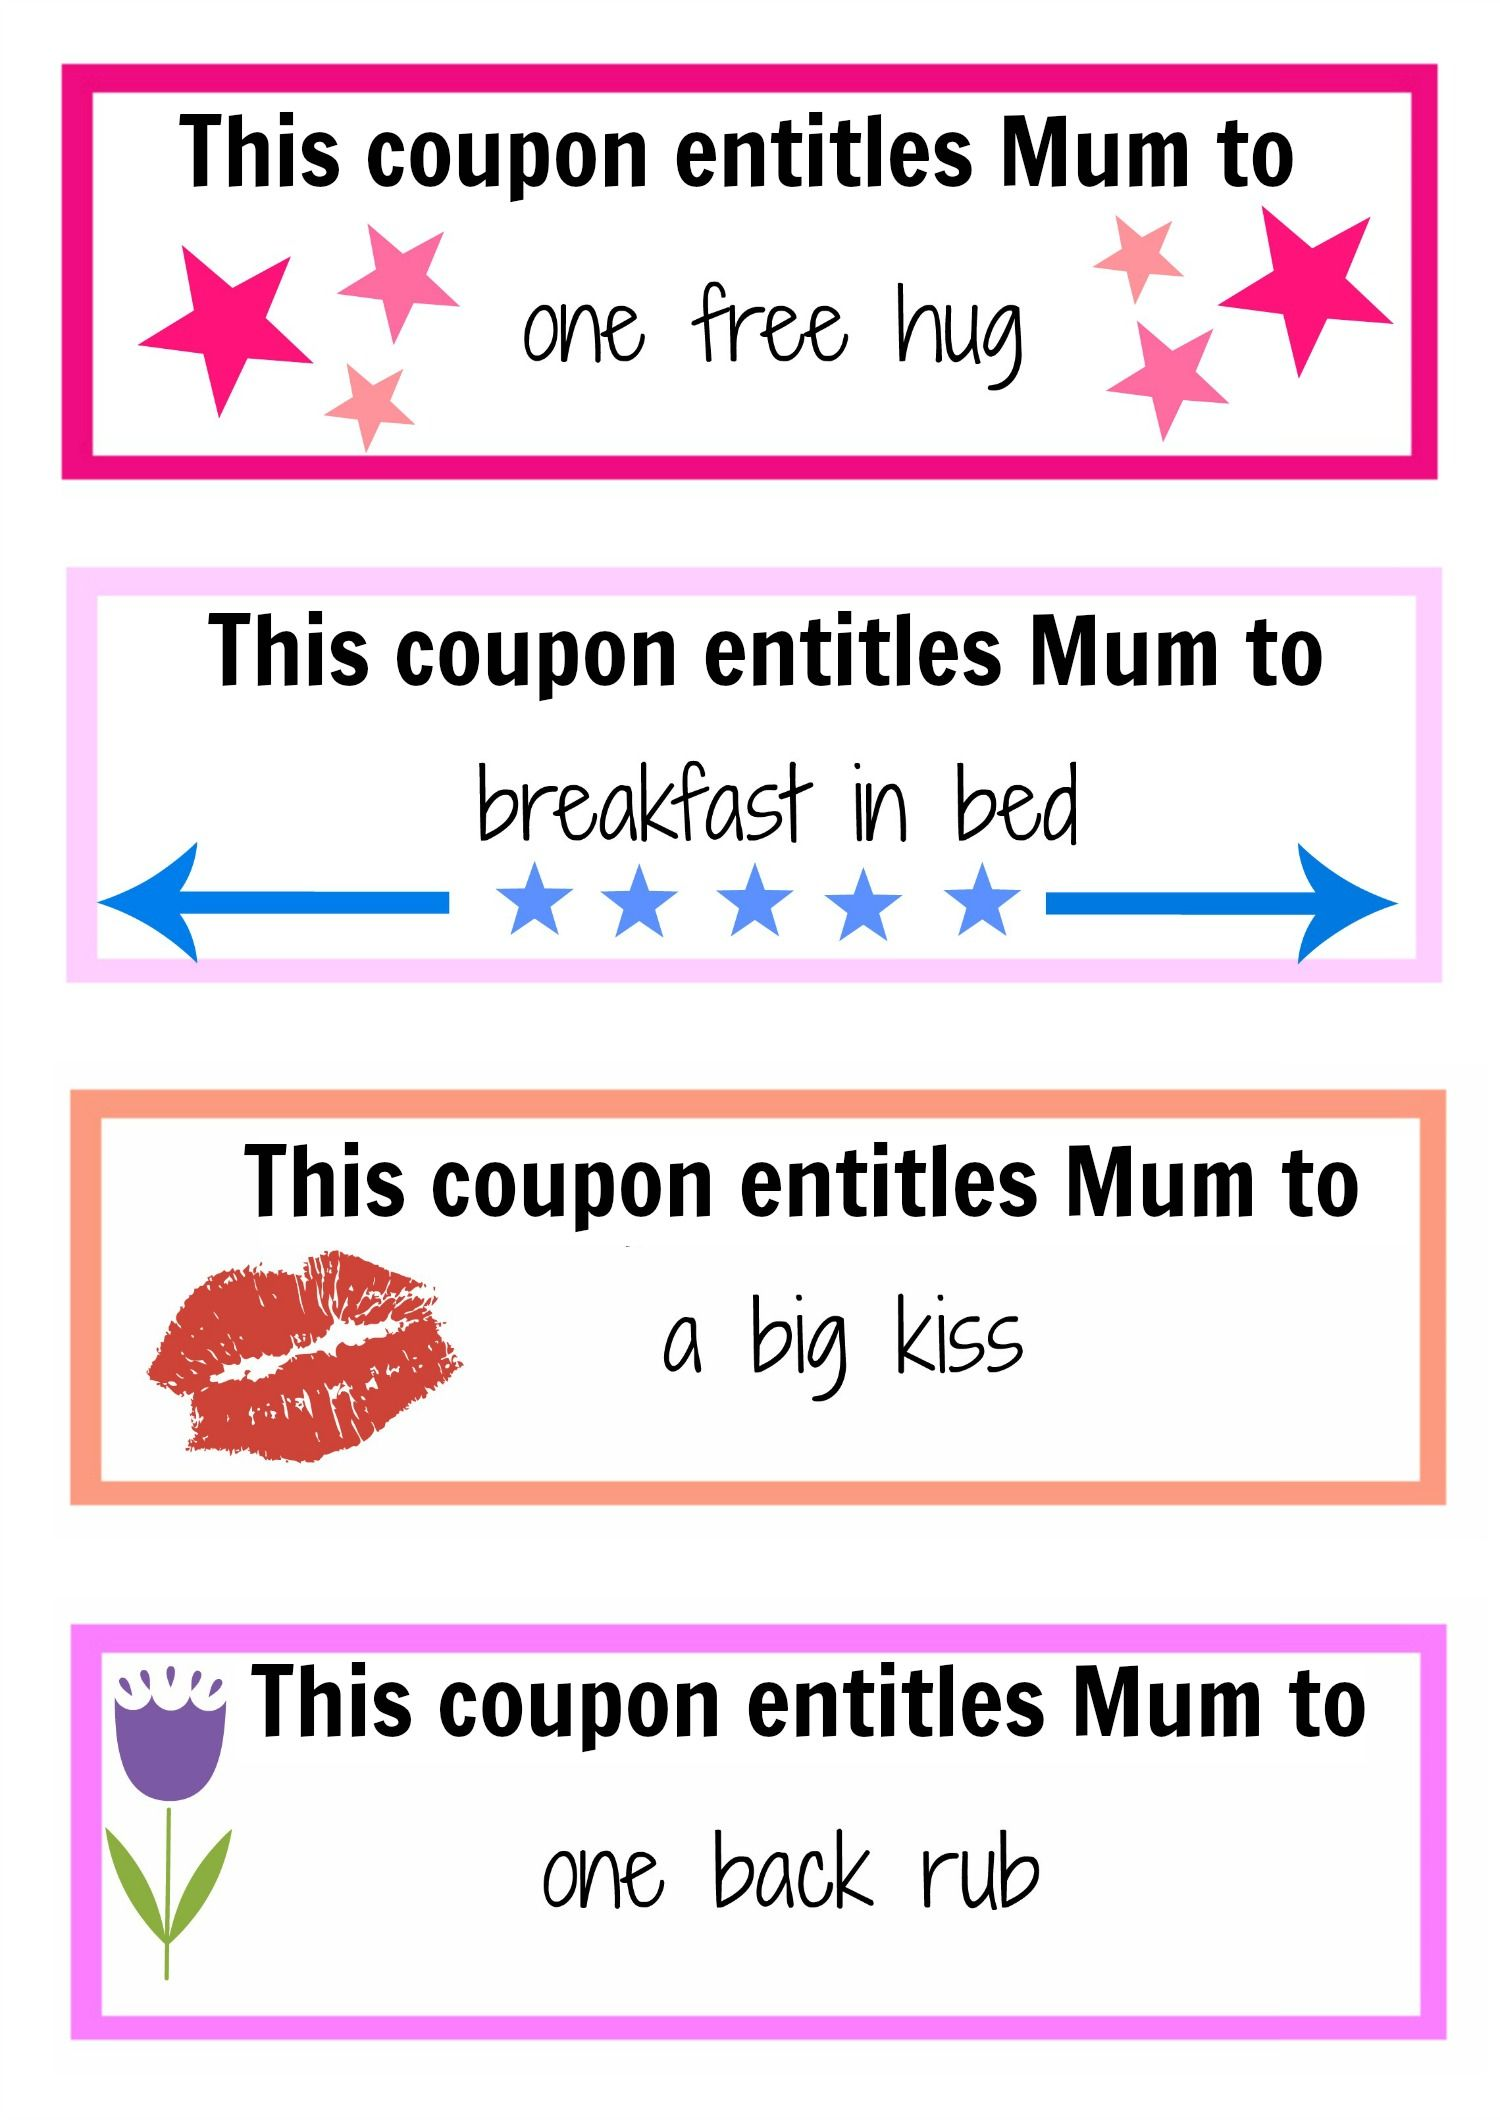 mother 39 s day coupon booklet holiday faves mother 39 s day coupons mother day gifts coupons. Black Bedroom Furniture Sets. Home Design Ideas